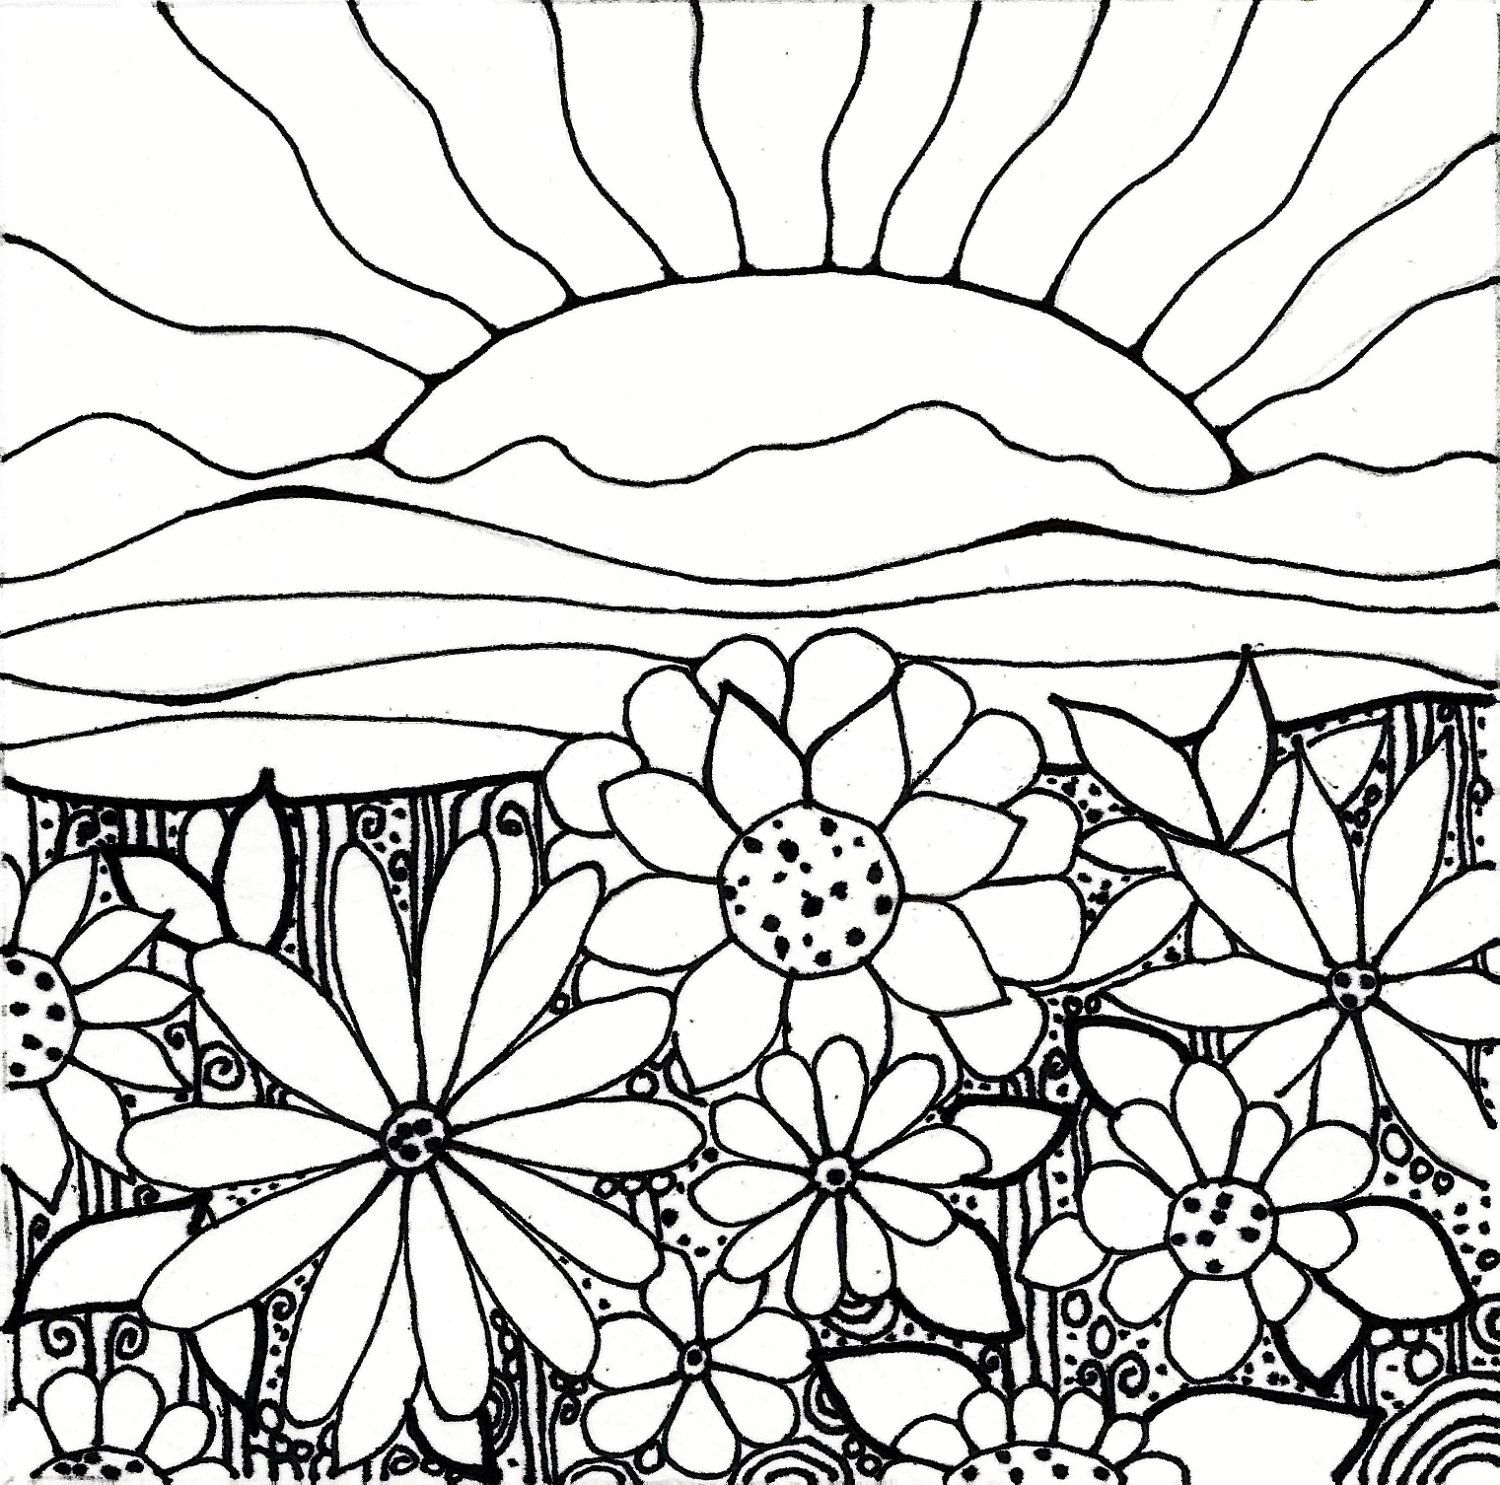 coloring sheets 1 on her etsy site these would be fun1